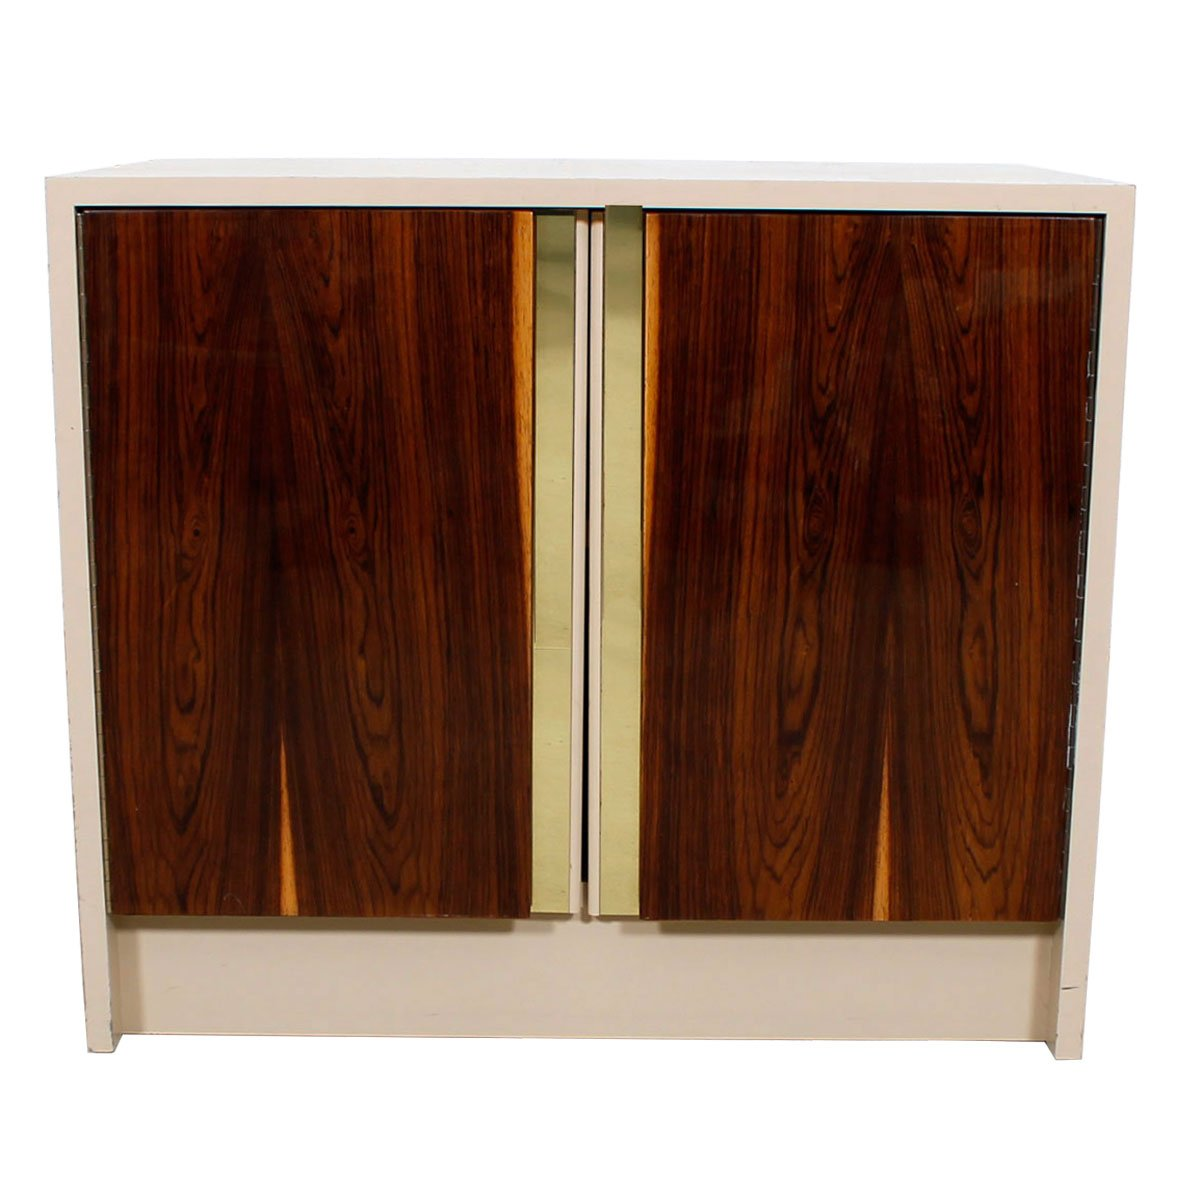 Milo Baughman Bar / Media Cabinet with Rosewood Doors.